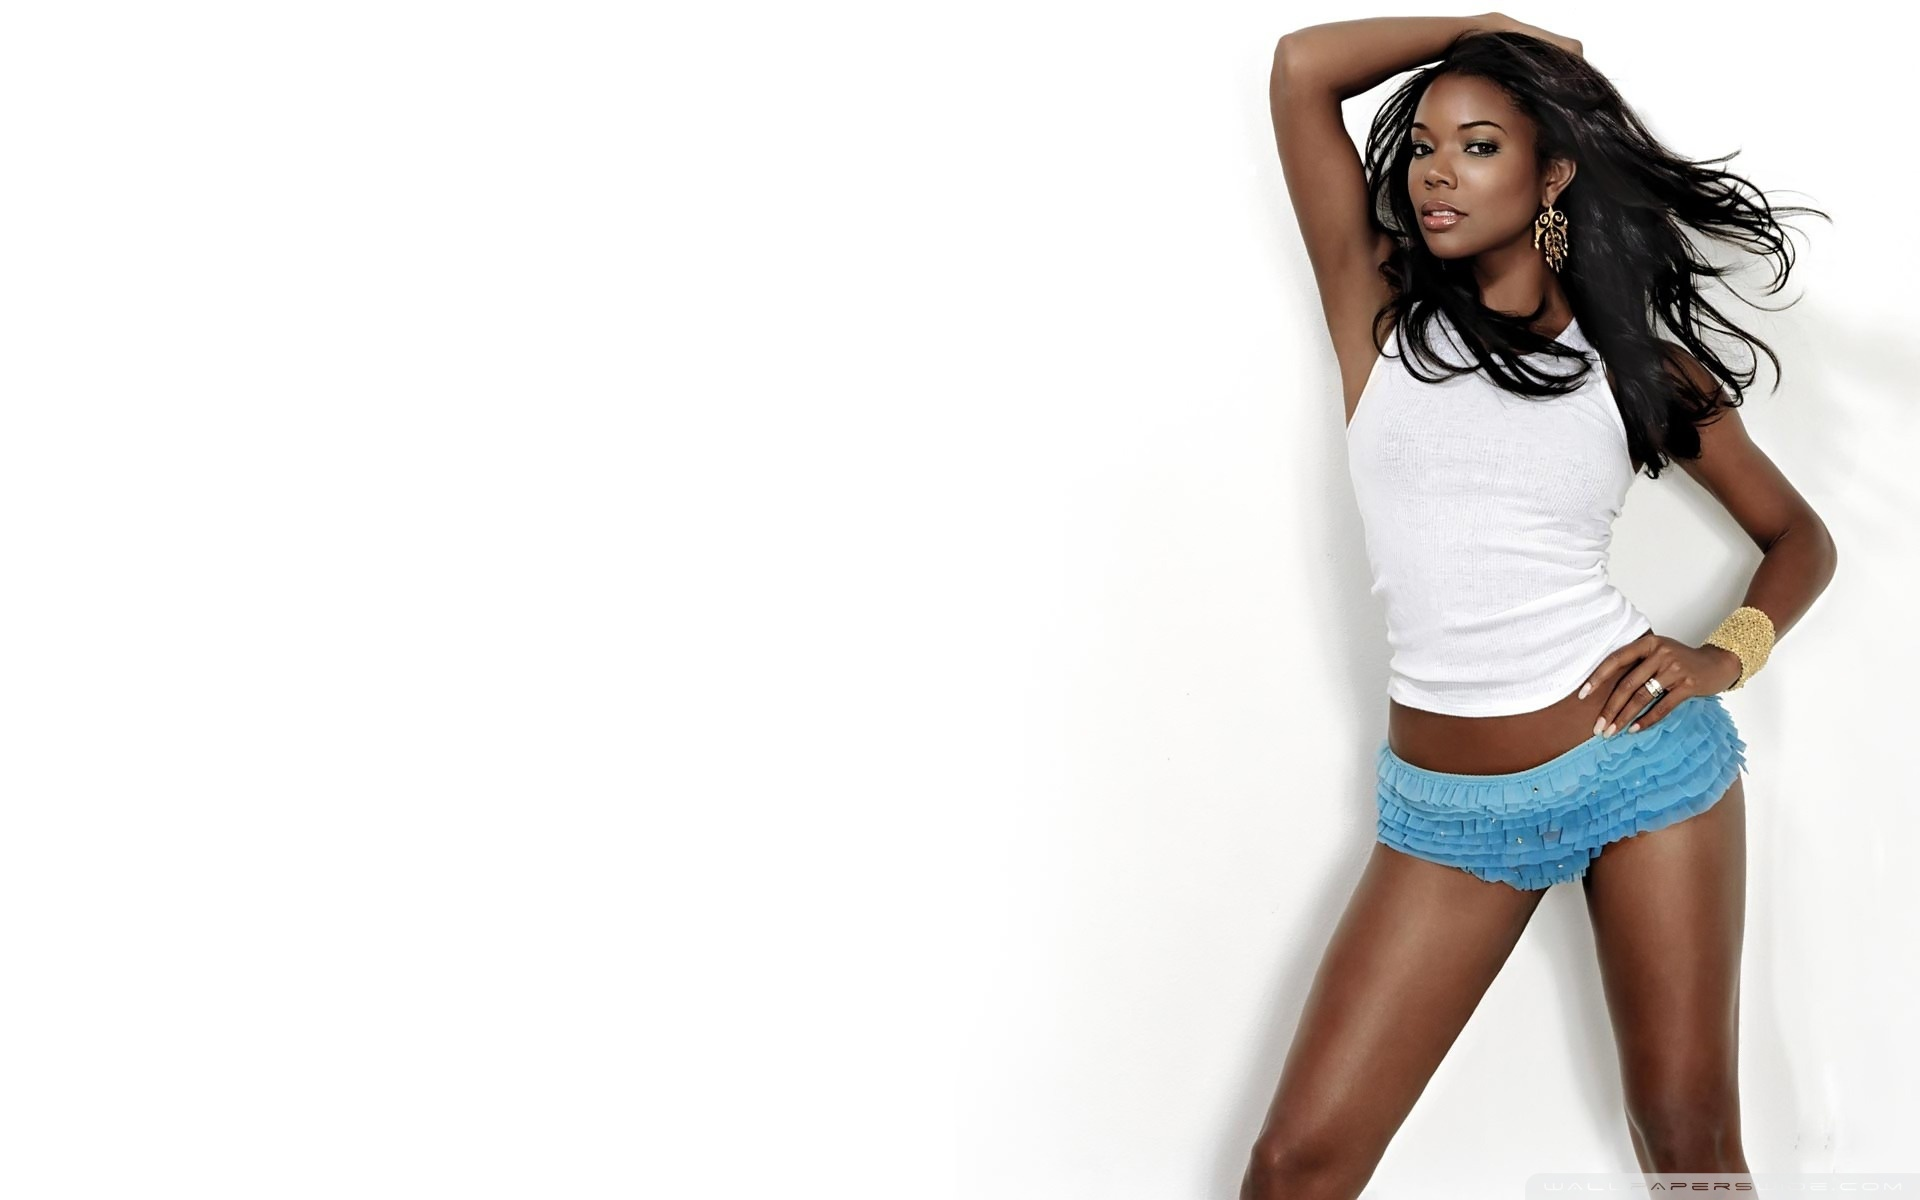 1920x1200 - Gabrielle Union Wallpapers 21